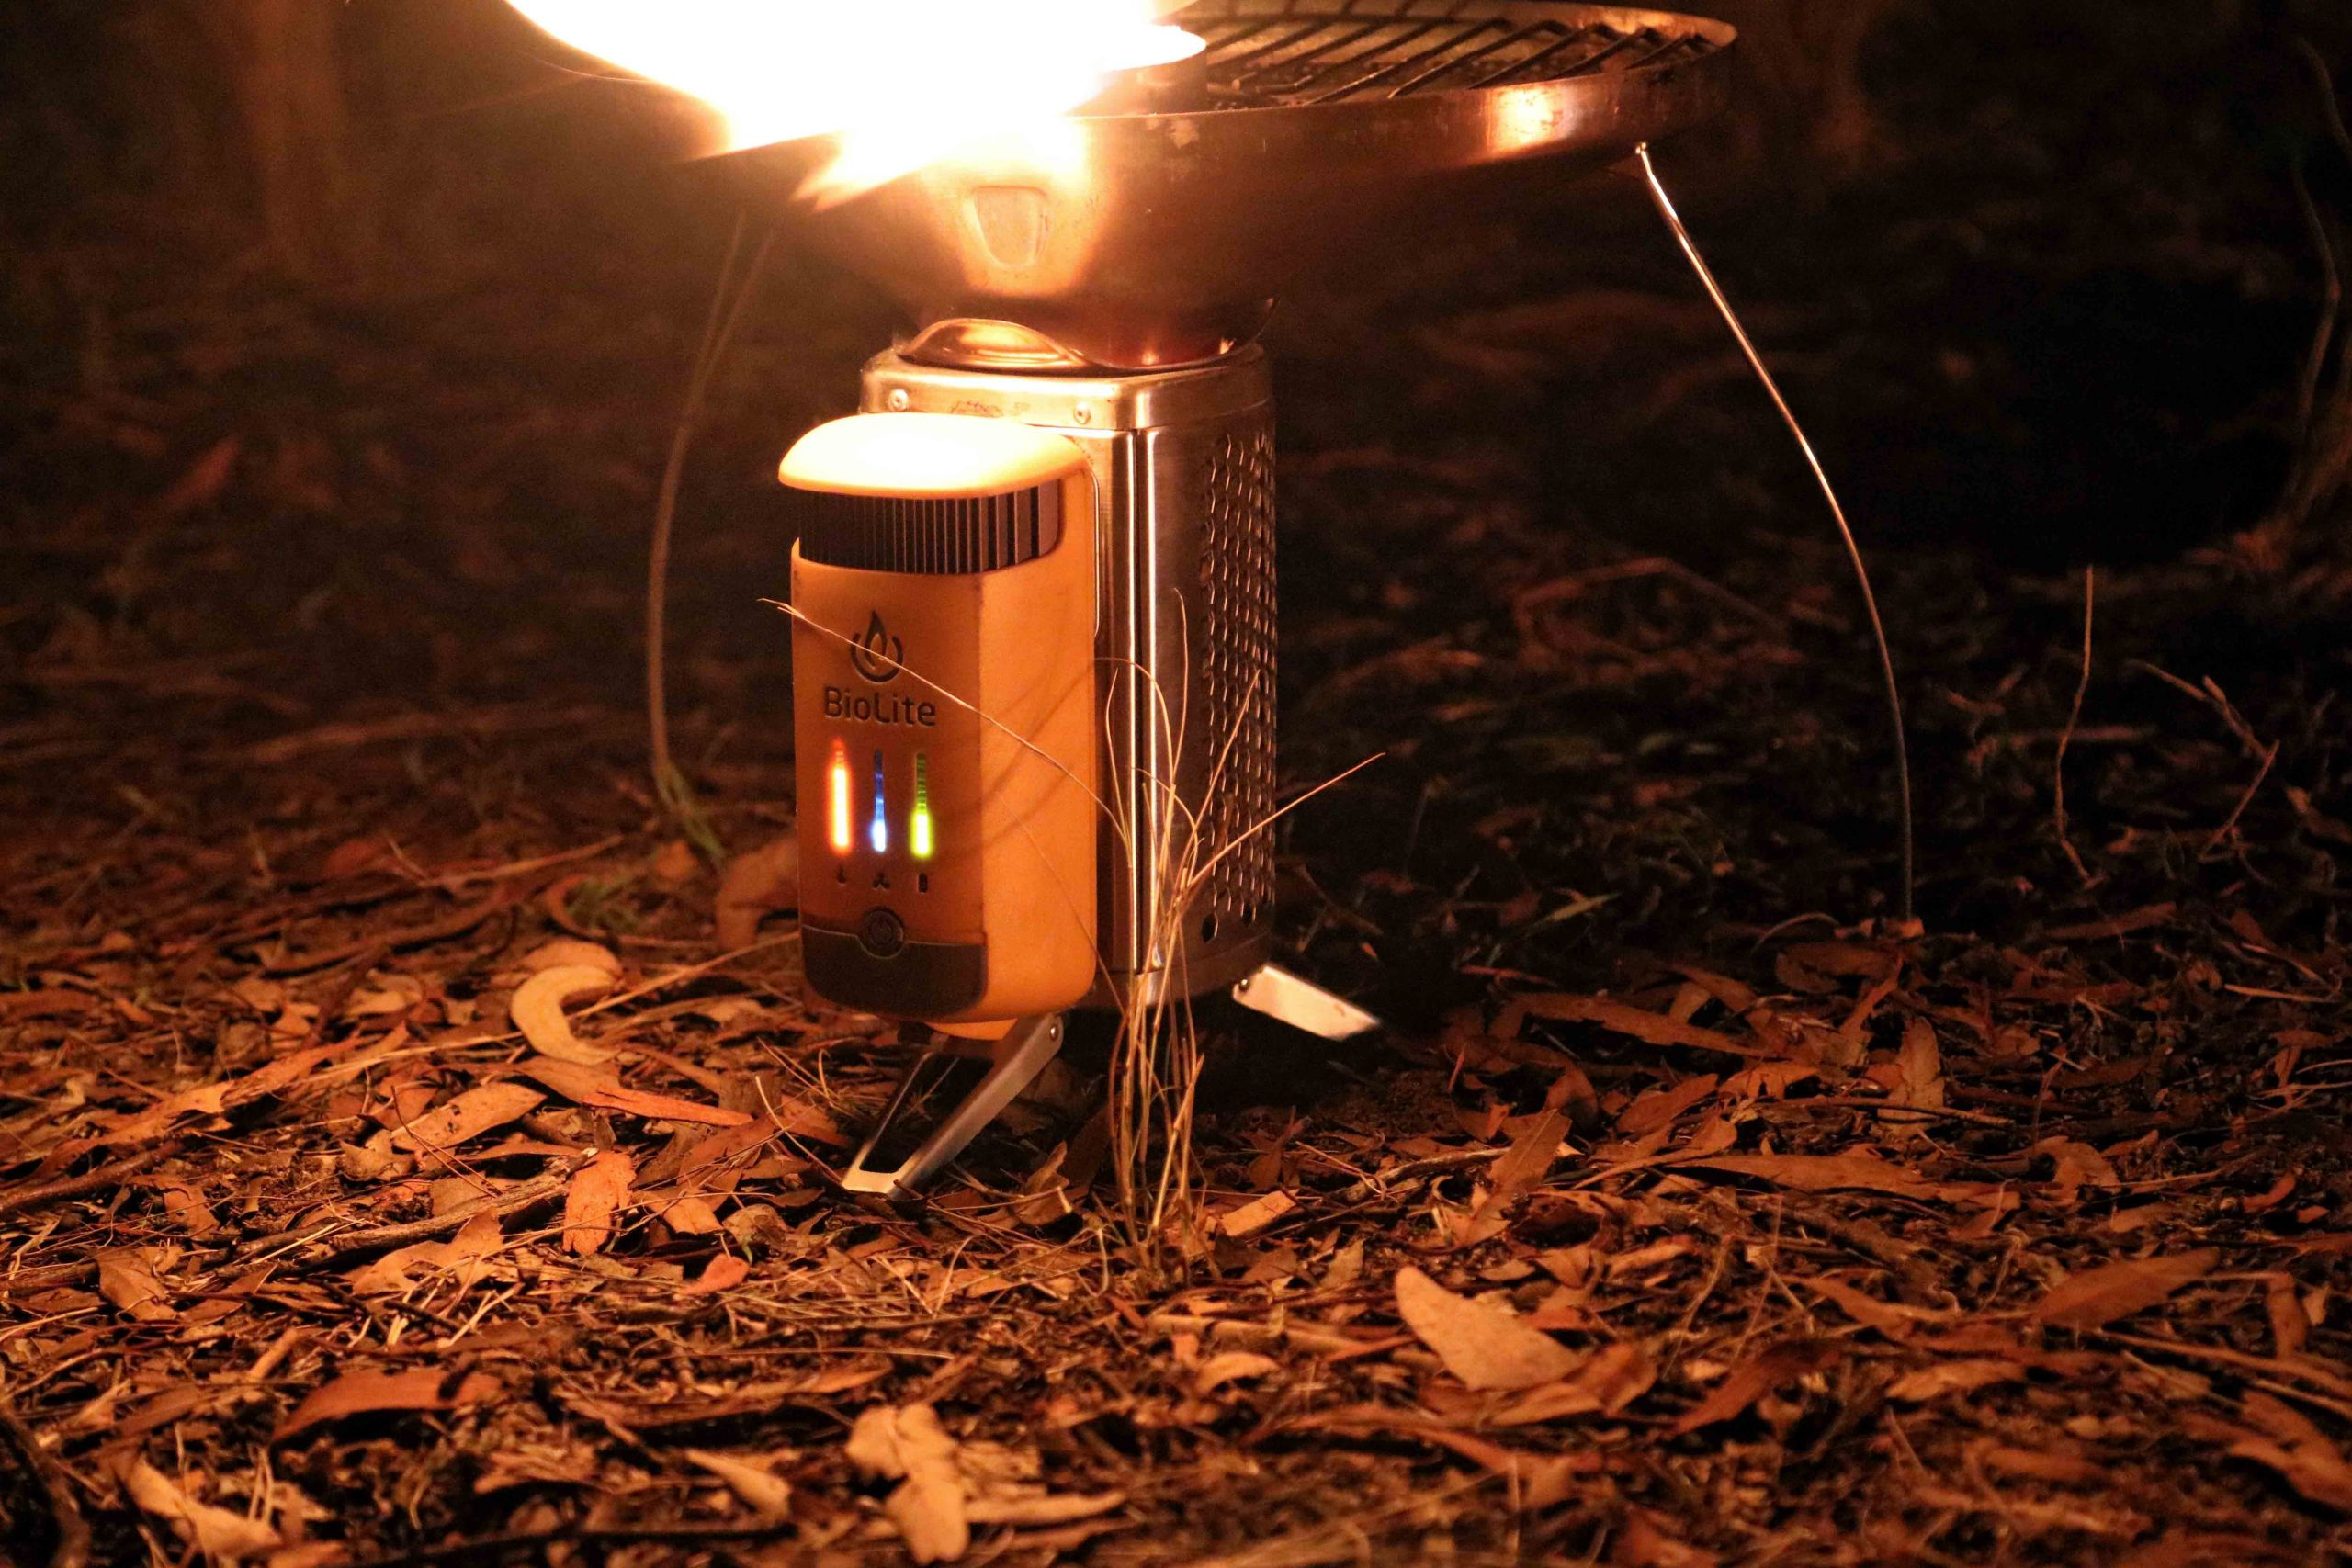 BioLite Camp Stove Product Review